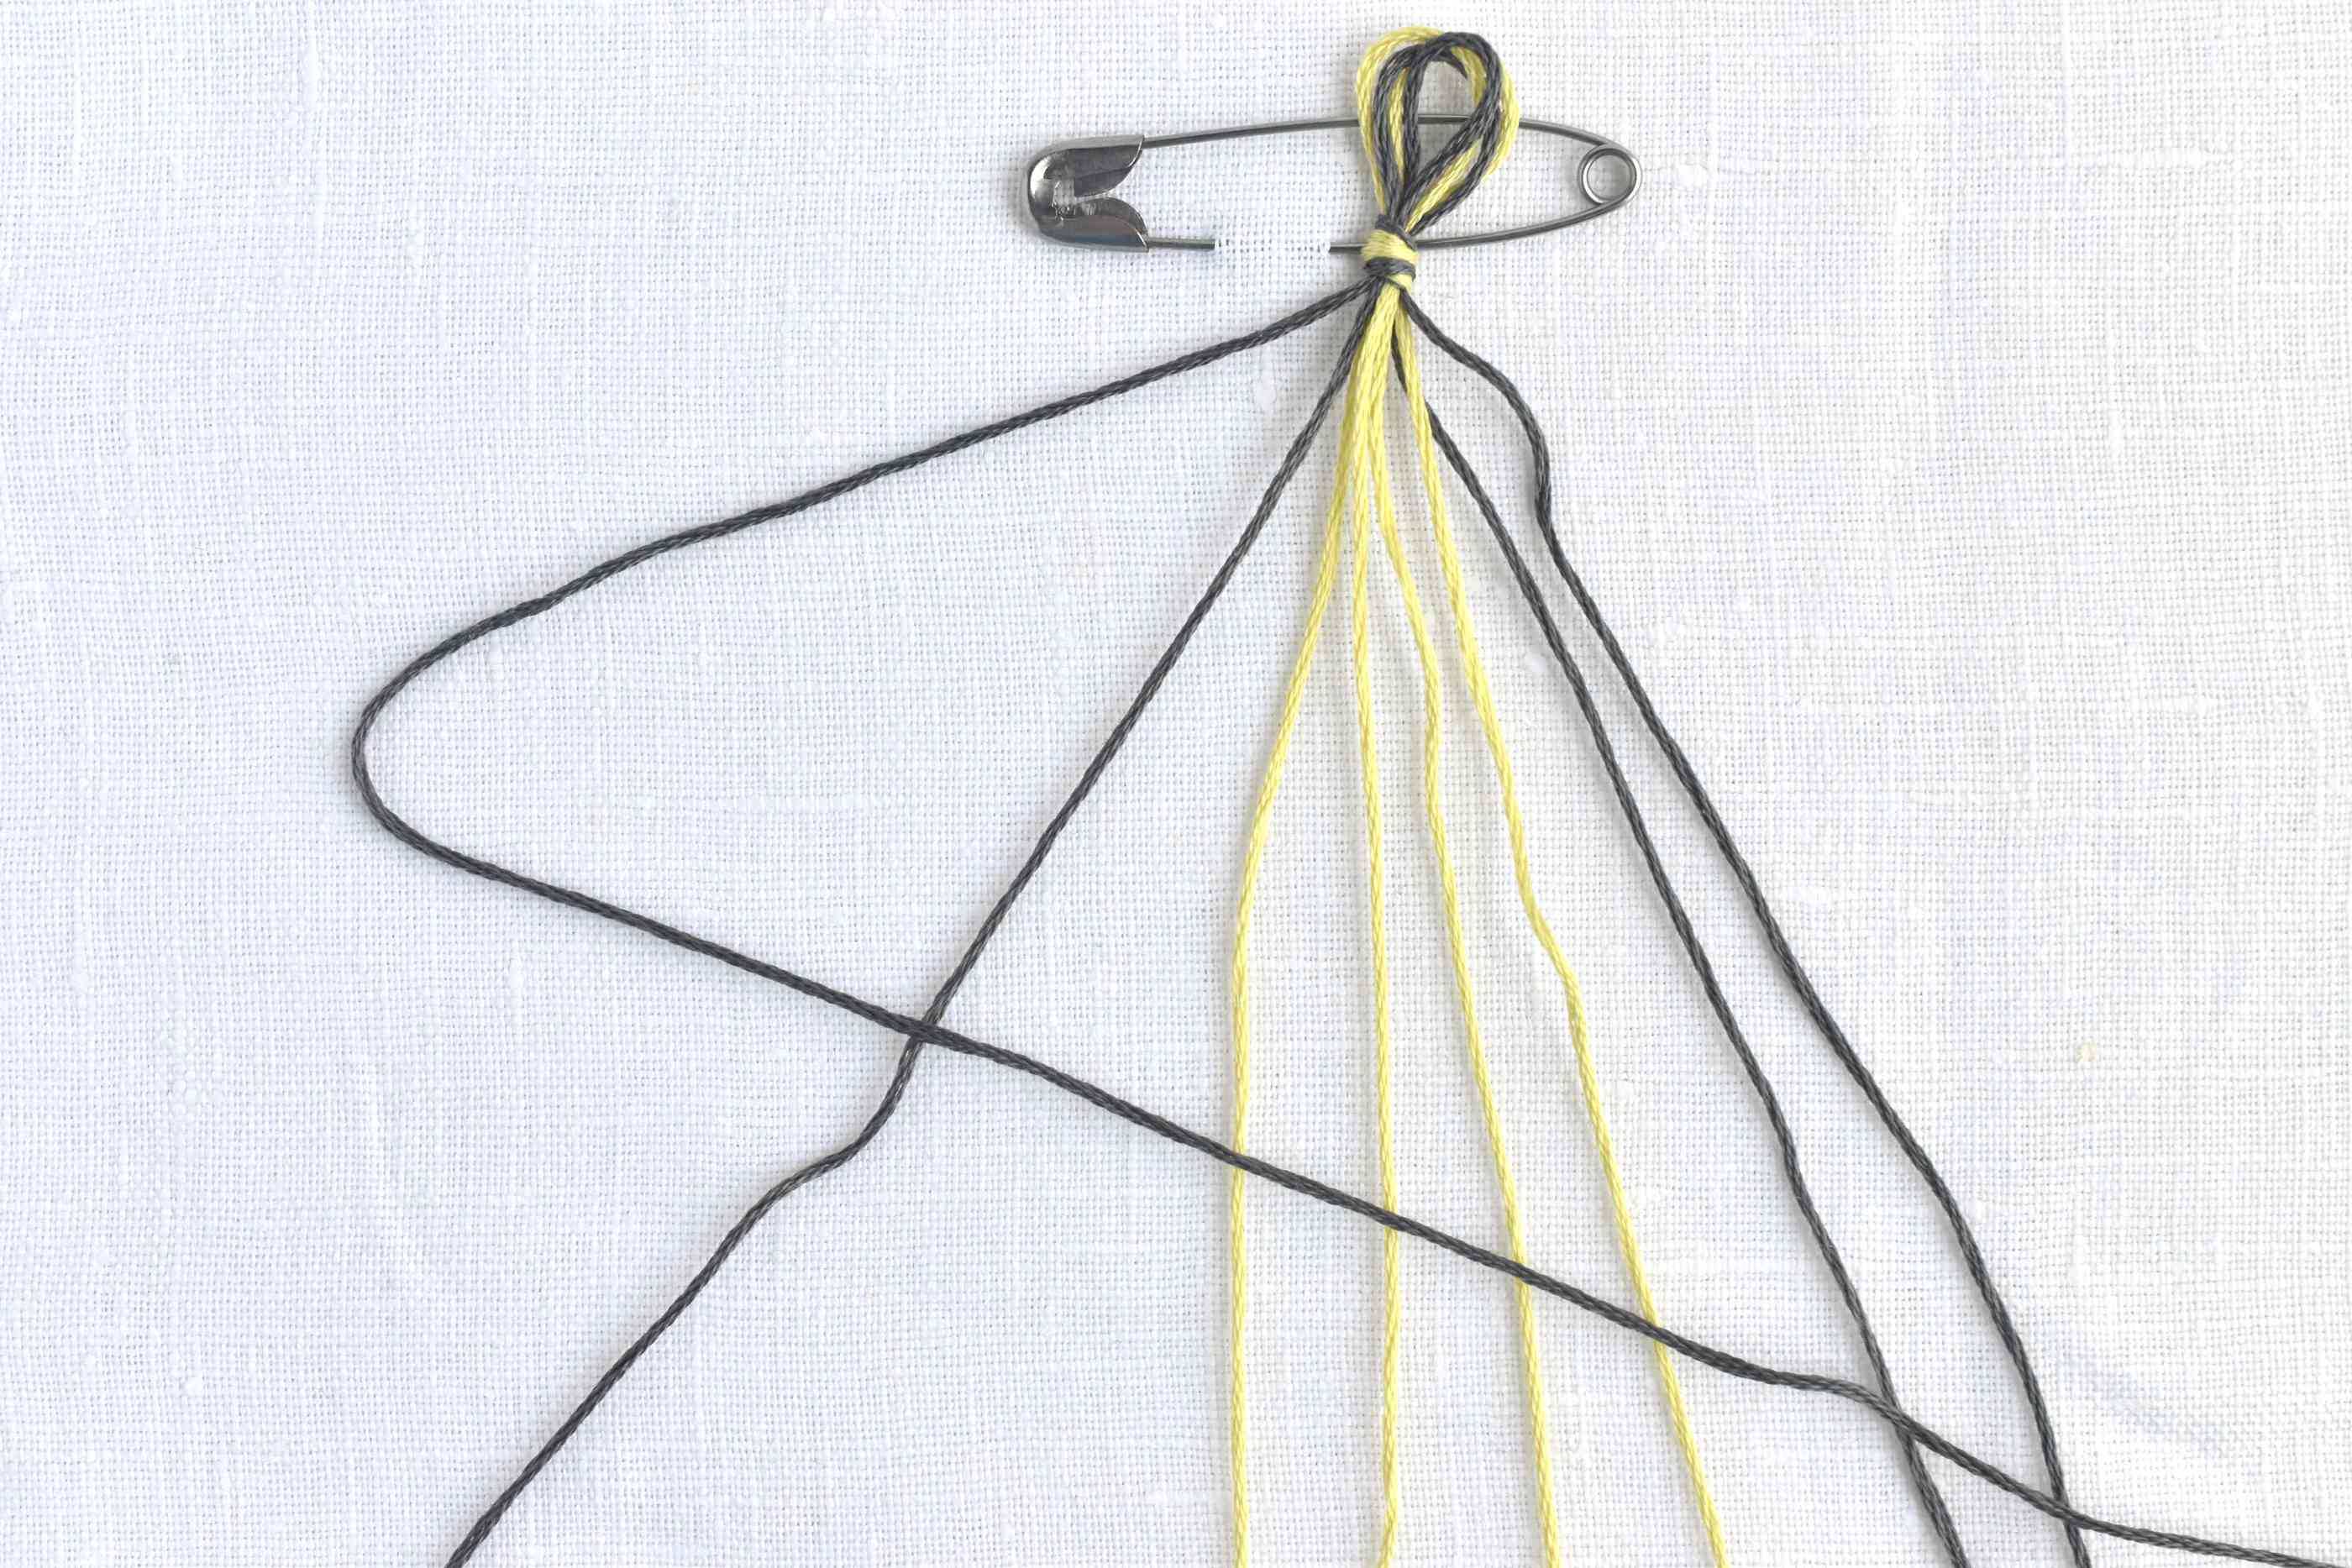 Make a 4 to start a forward knot